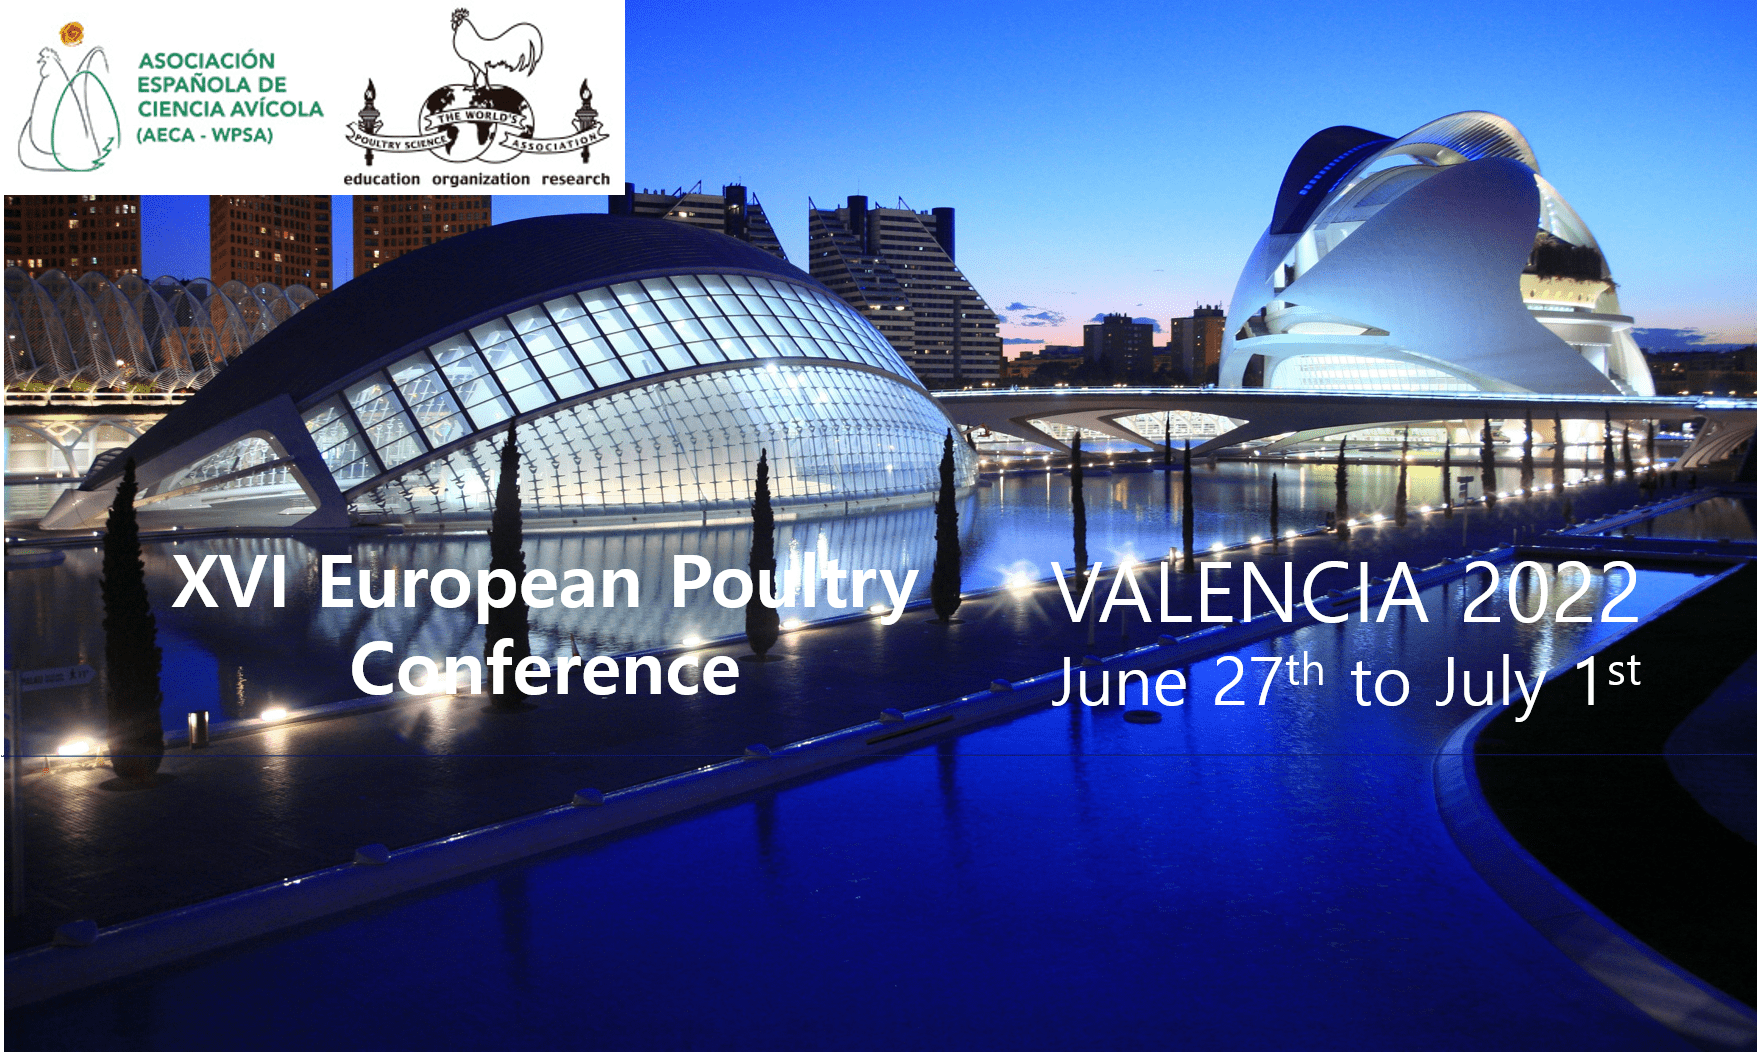 XVI EUROPEAN POULTRY CONFERENCE-VALENCIA 2022